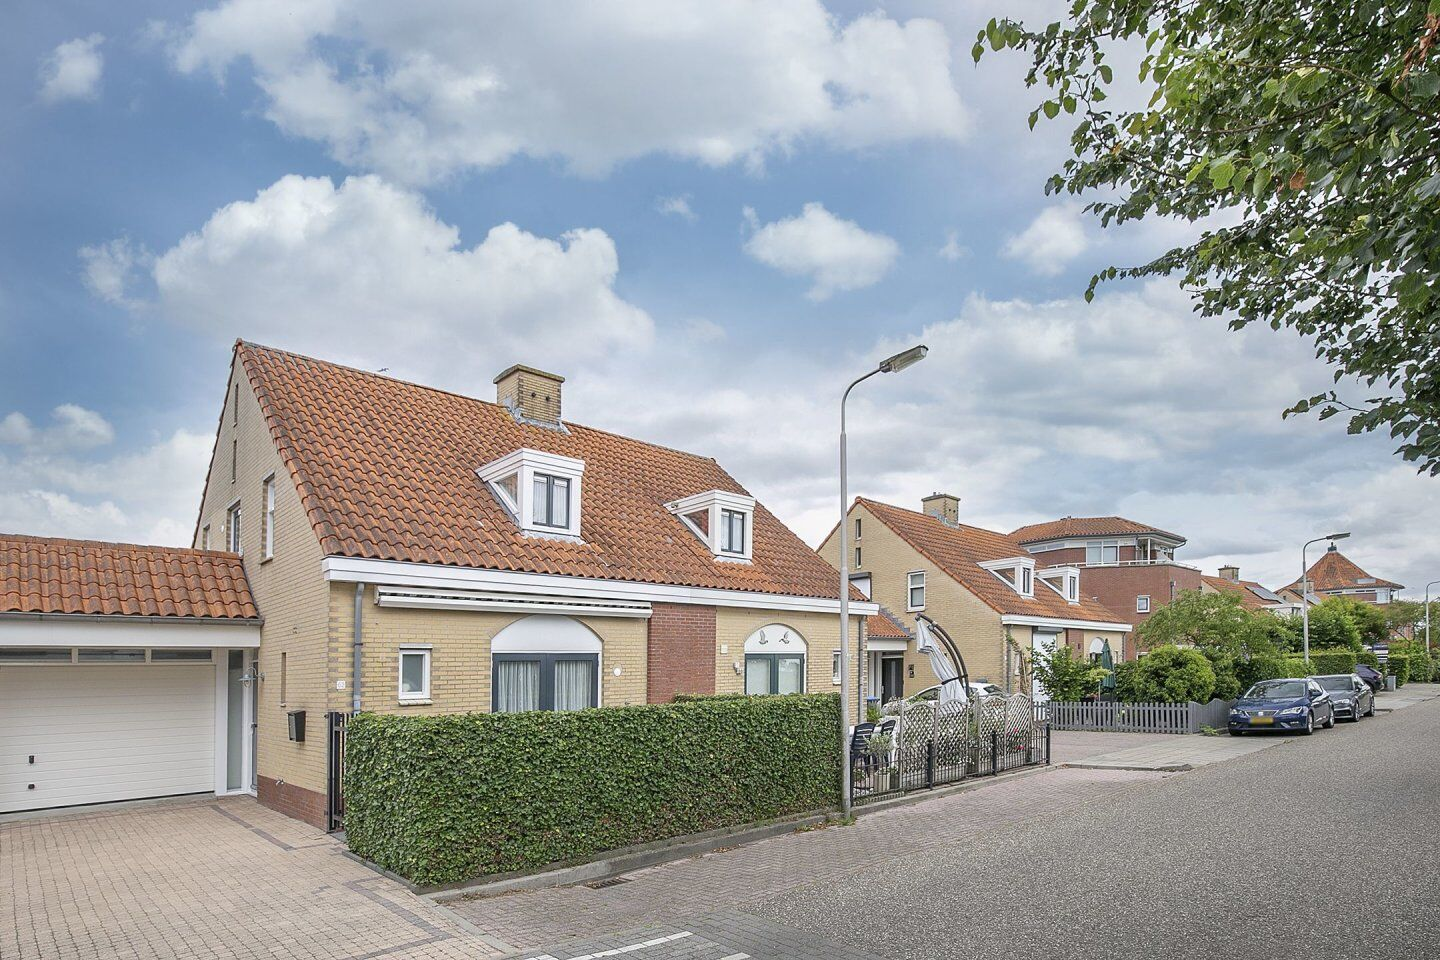 30952-west-havendijk_62-steenbergen-722052077